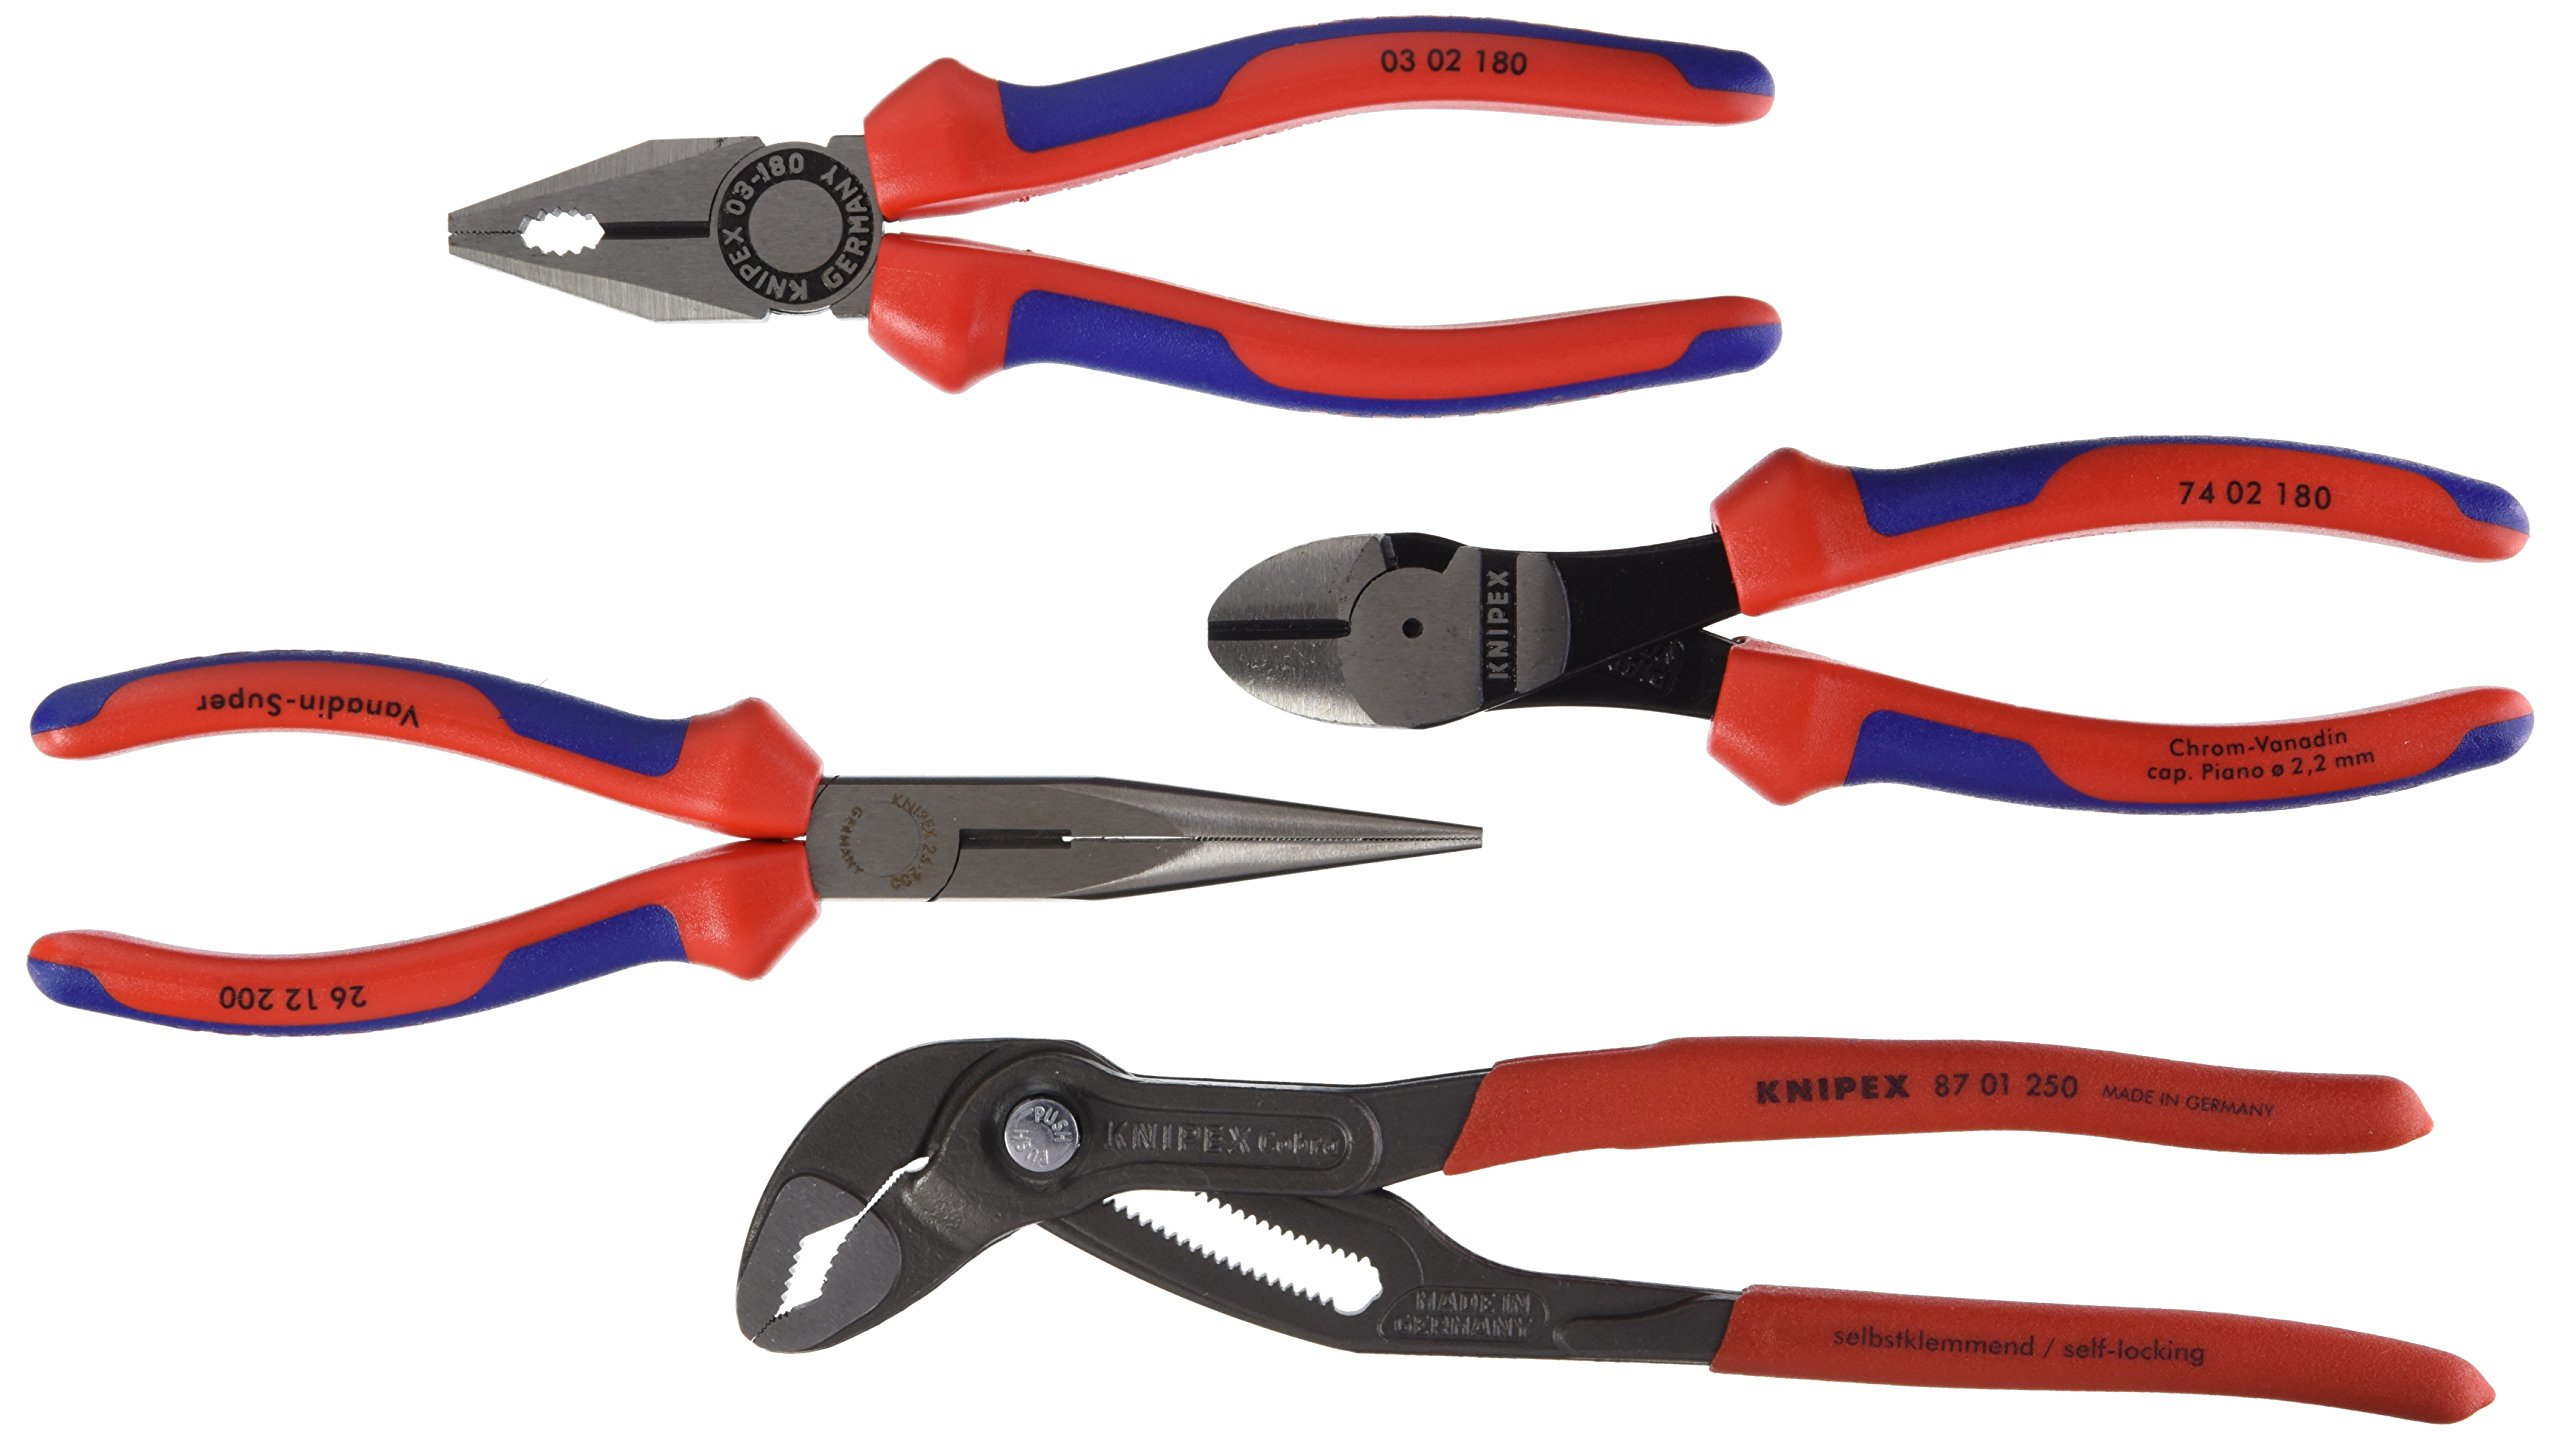 00 20 01 V15 Pliers Set ''Basic'' 4Piece in Red/Blue